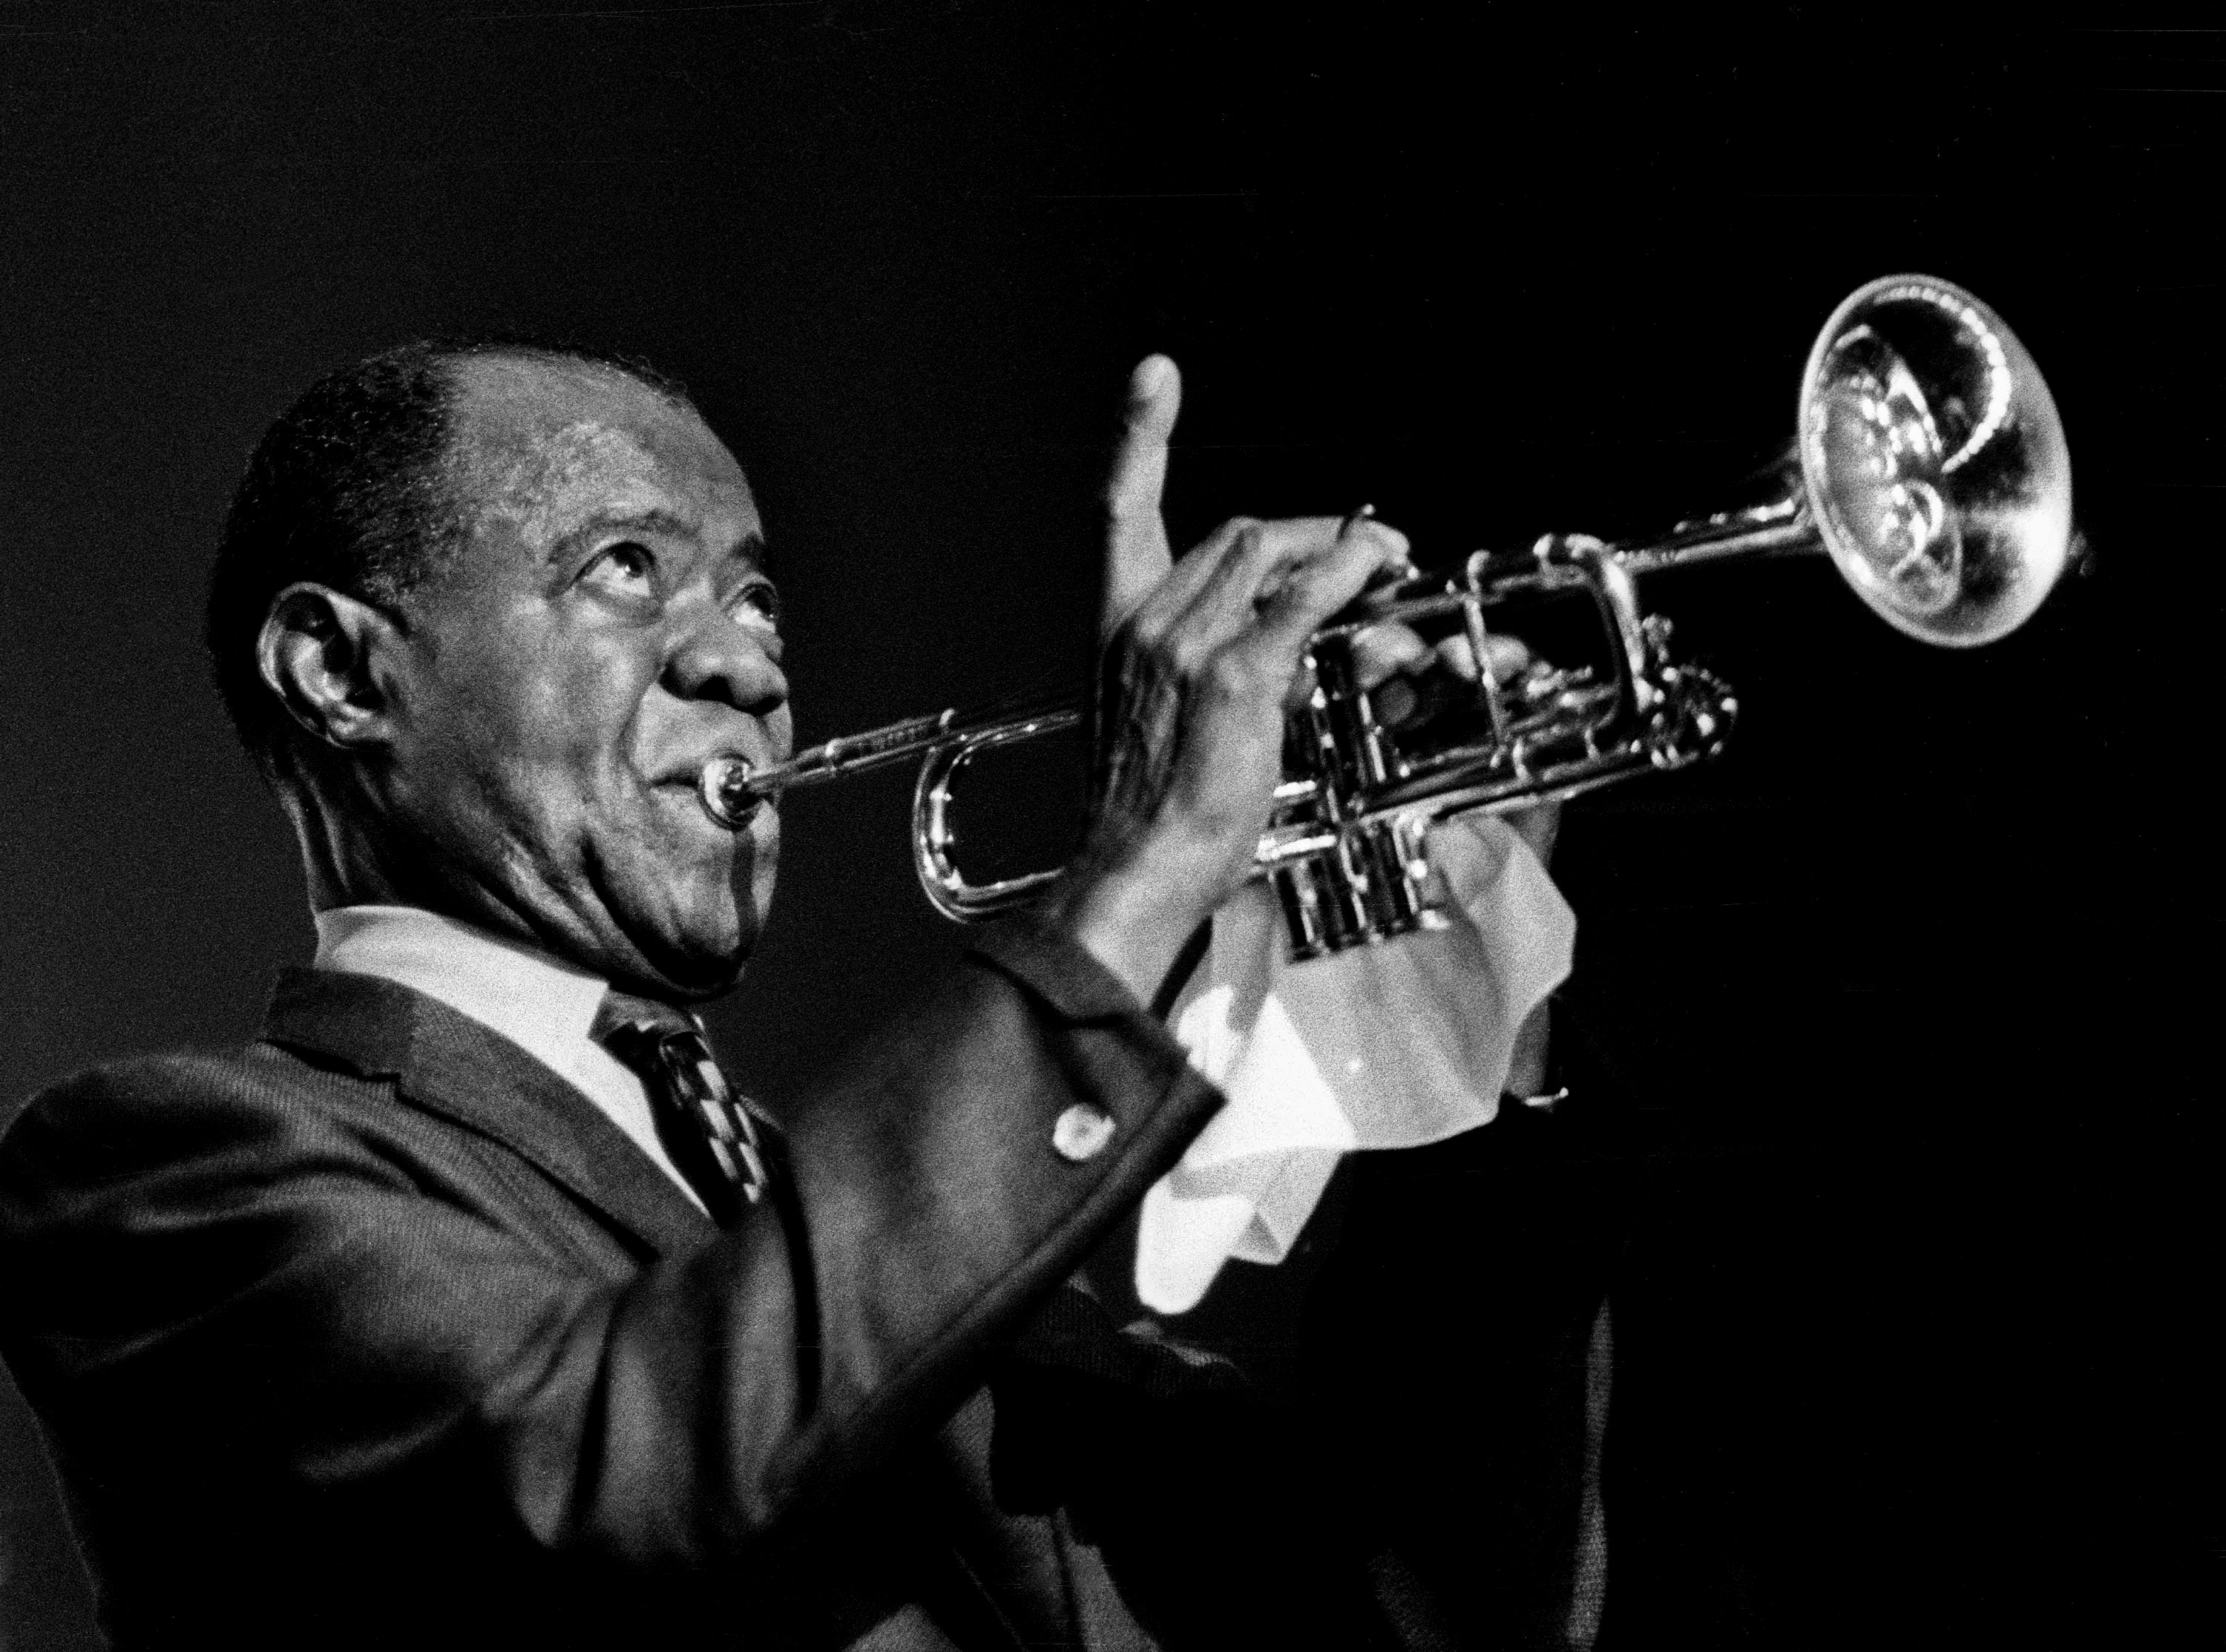 132.Louis_Armstrong_1968